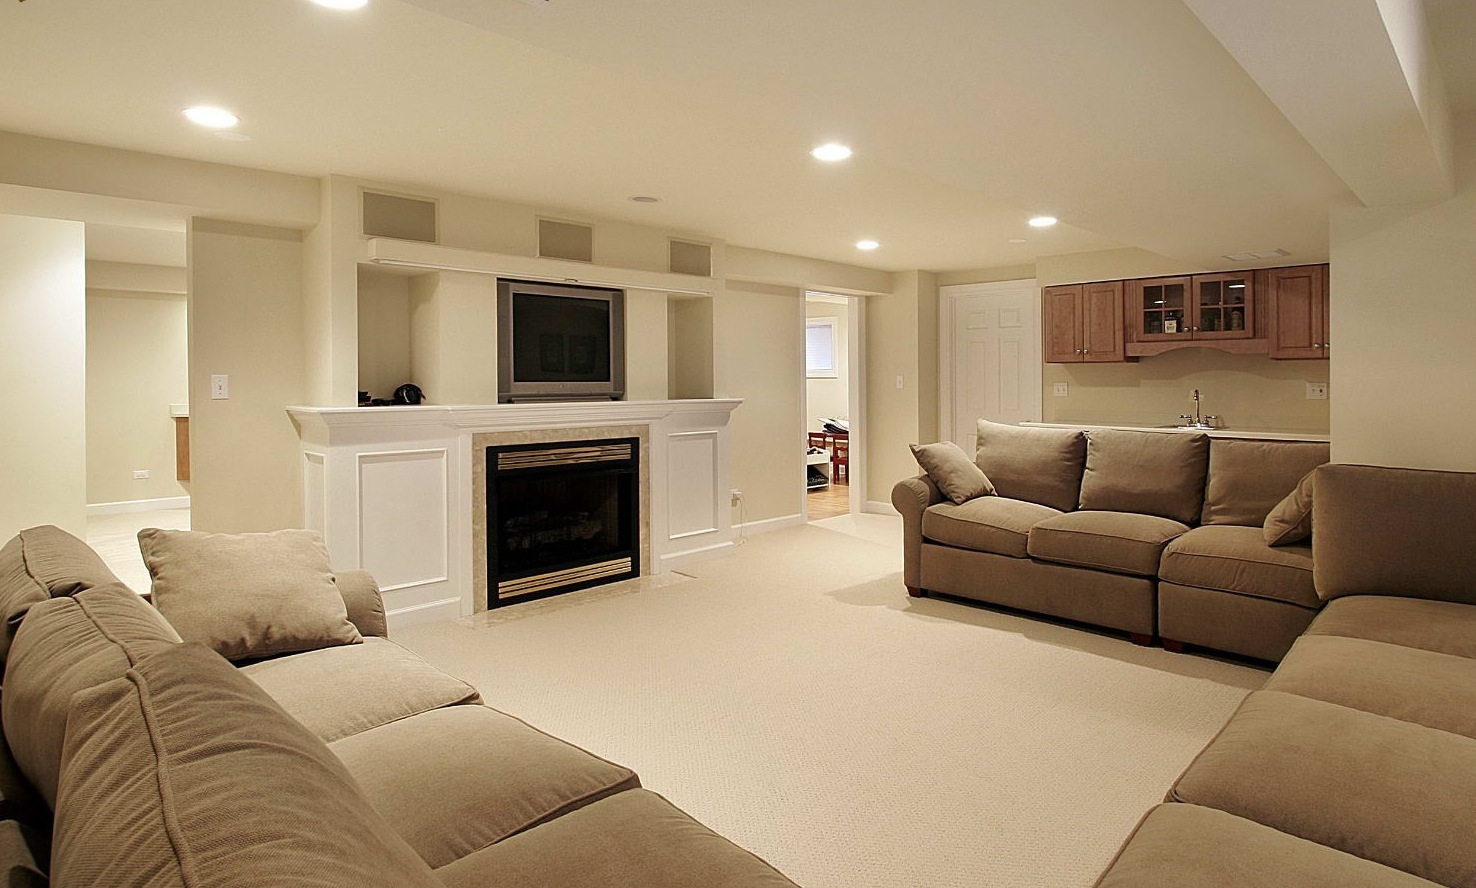 Basement Remodeling Ideas Unique 30 Basement Remodeling Ideas & Inspiration Design Inspiration